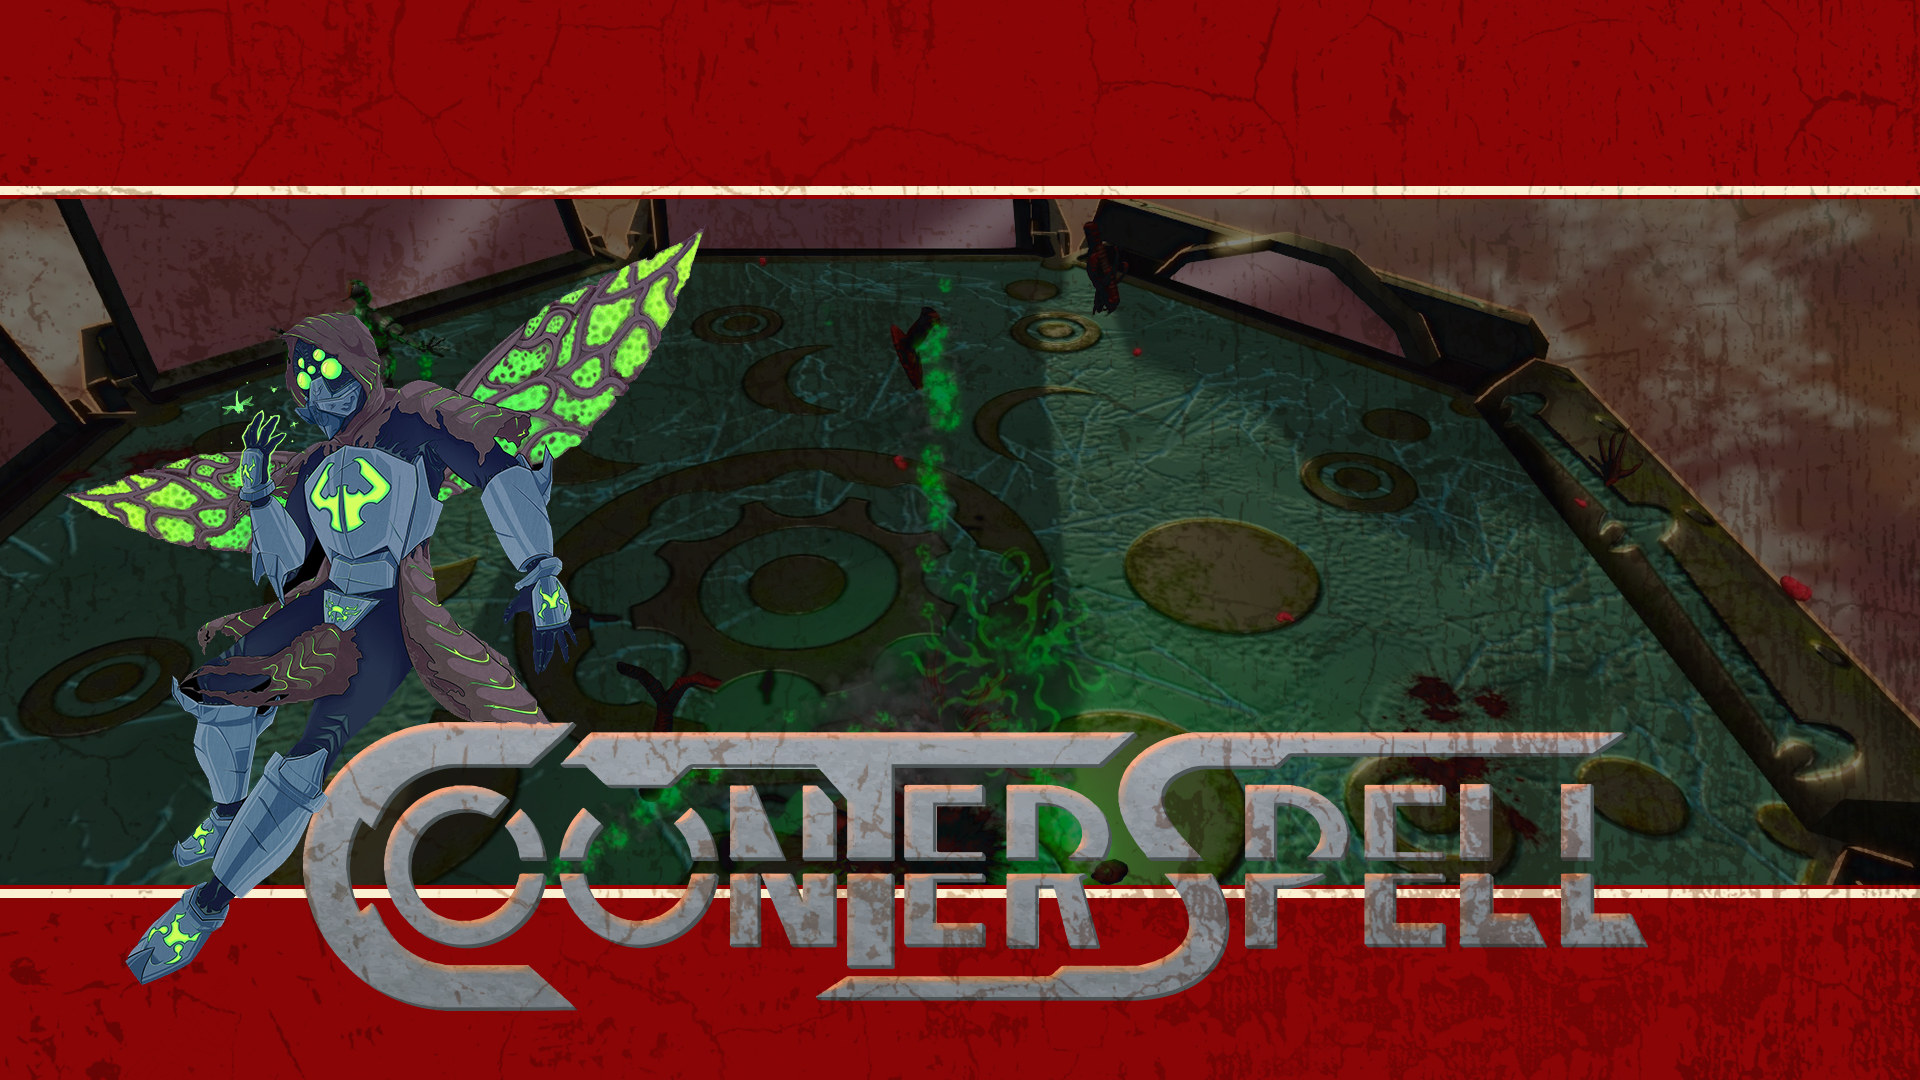 16.00 - Counterspell Launch Party